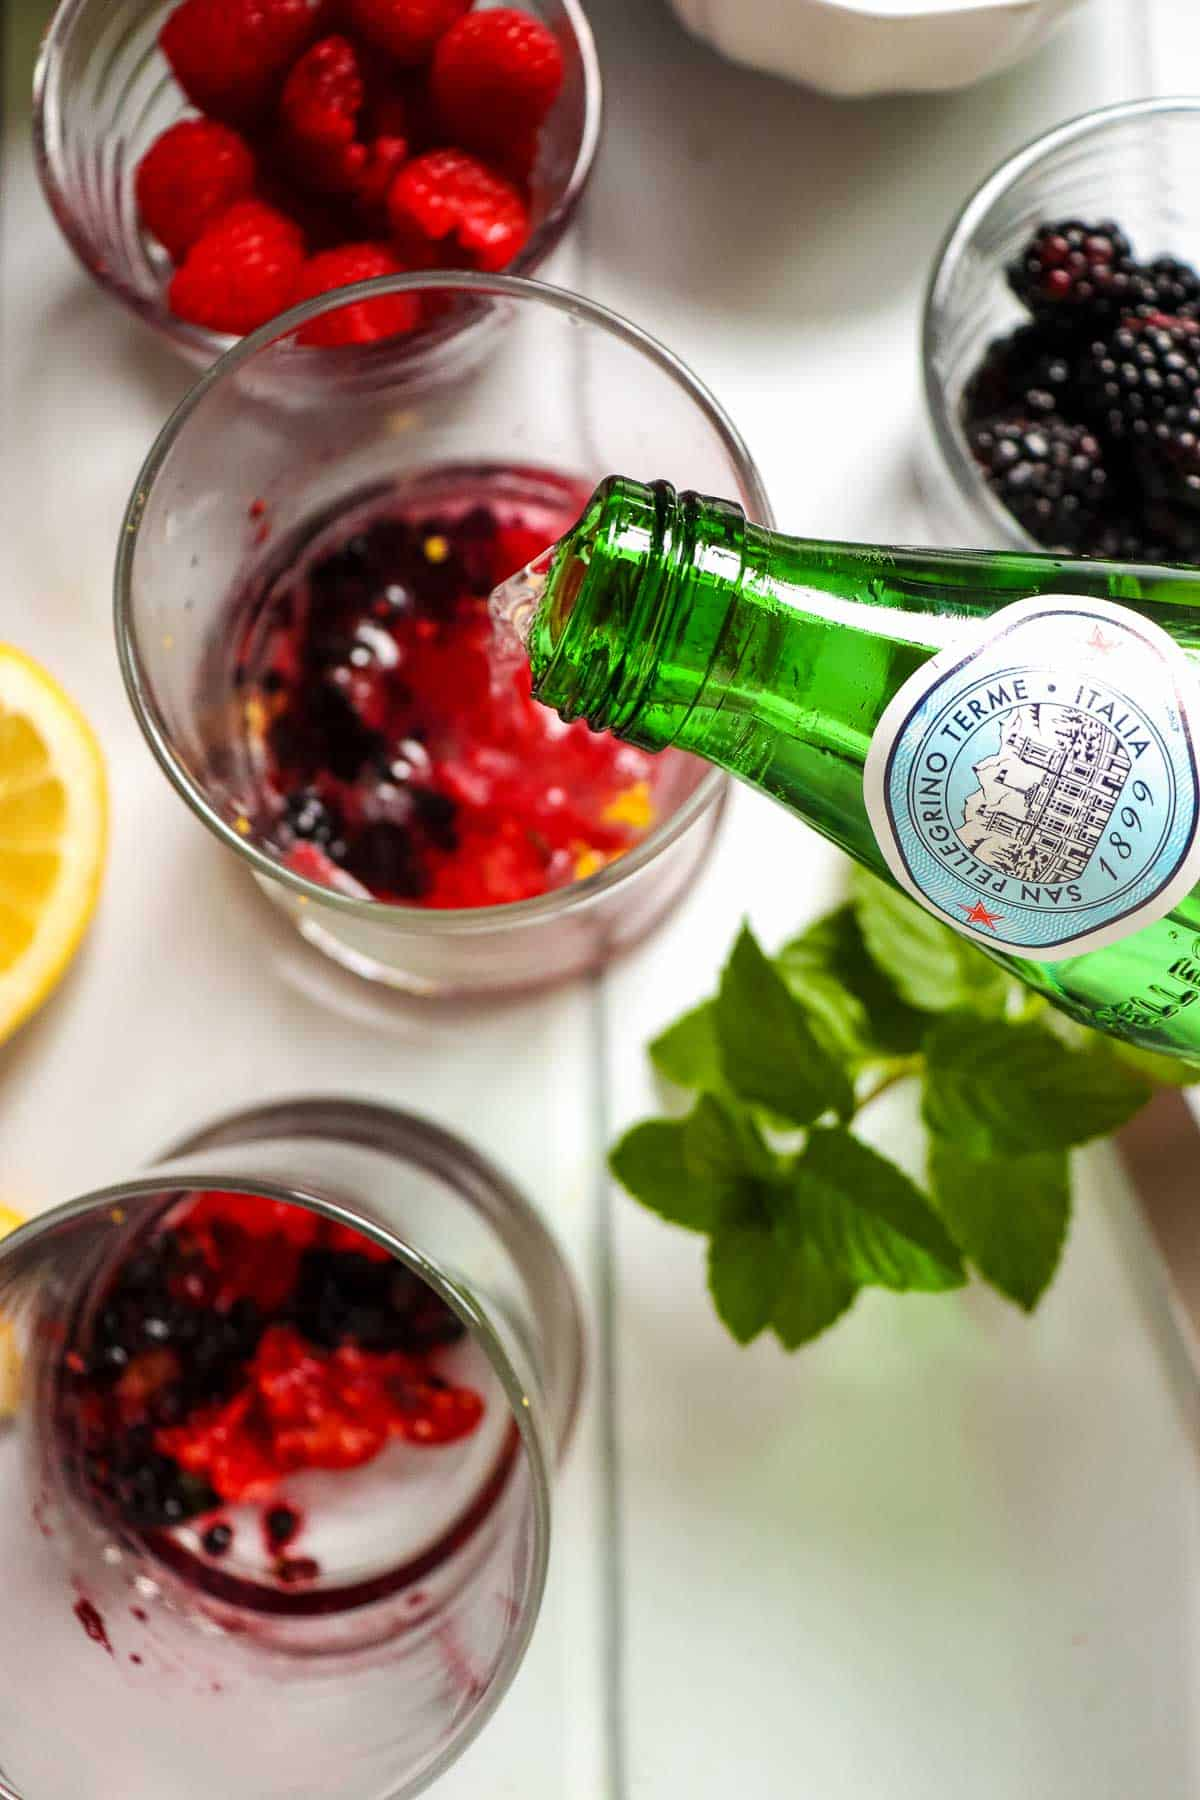 Adding sparkling water to a glass.